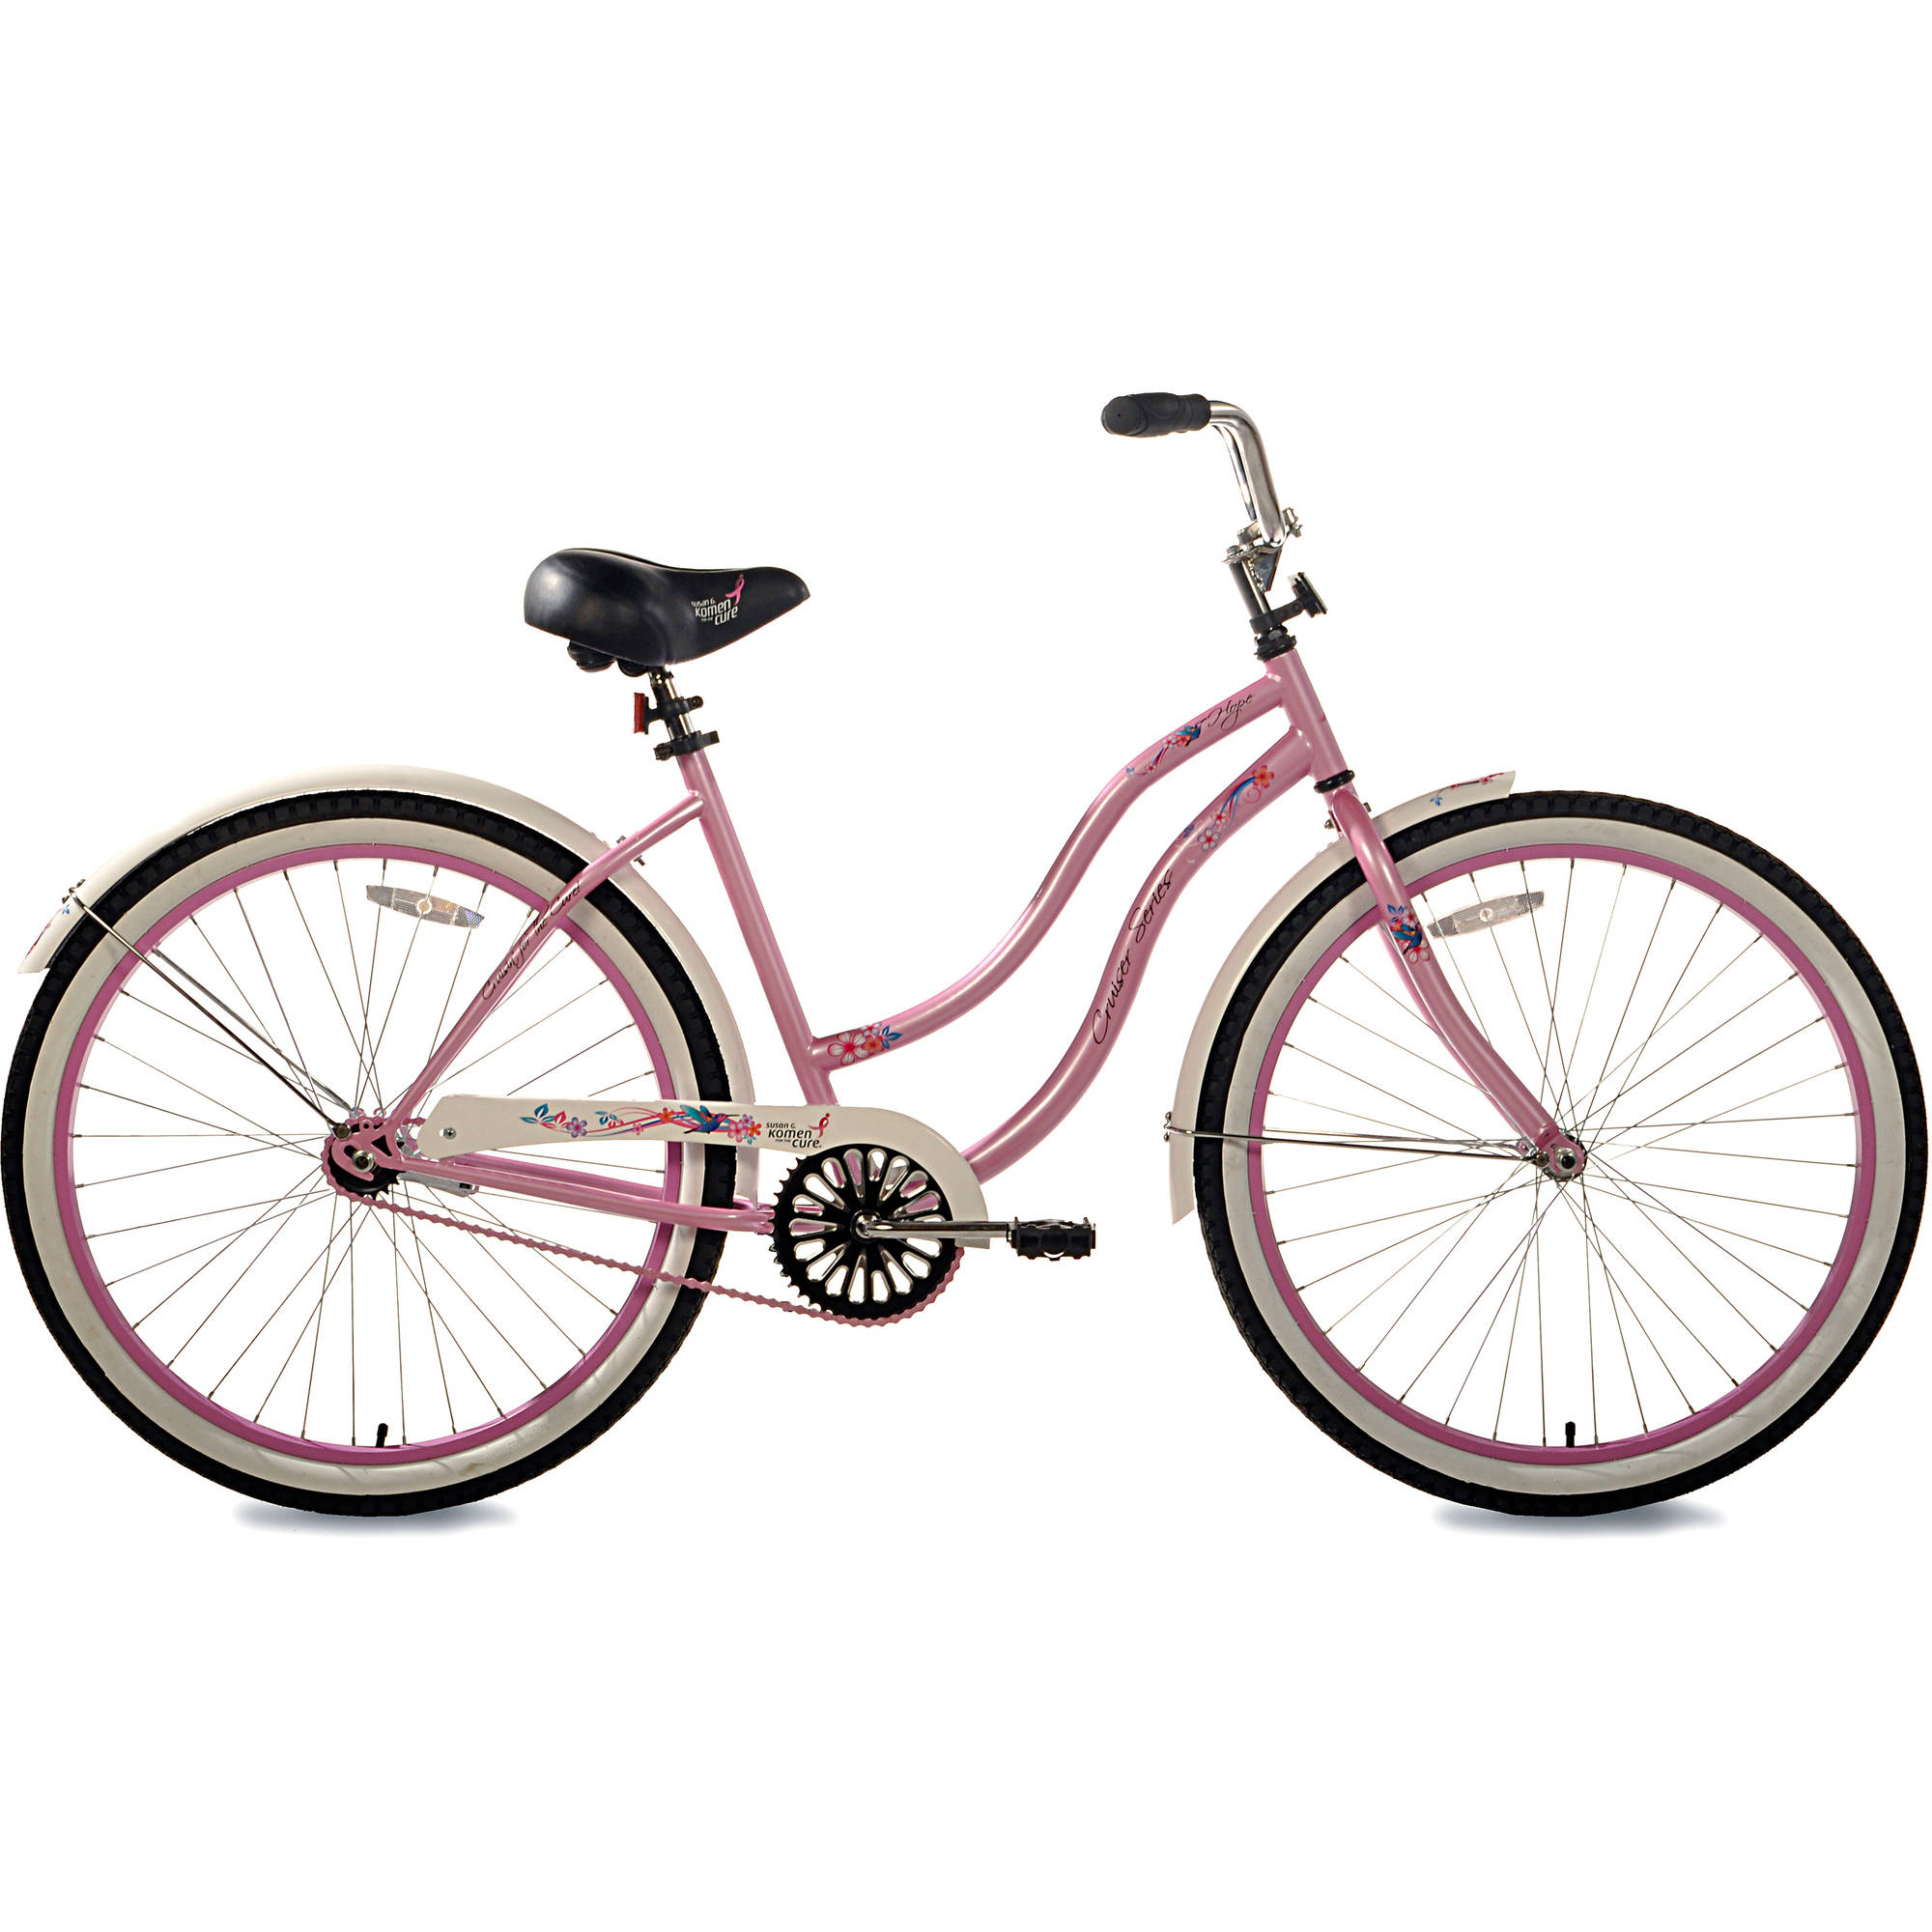 "26"" Susan G. Komen Single-Speed Women's Cruiser Bike"